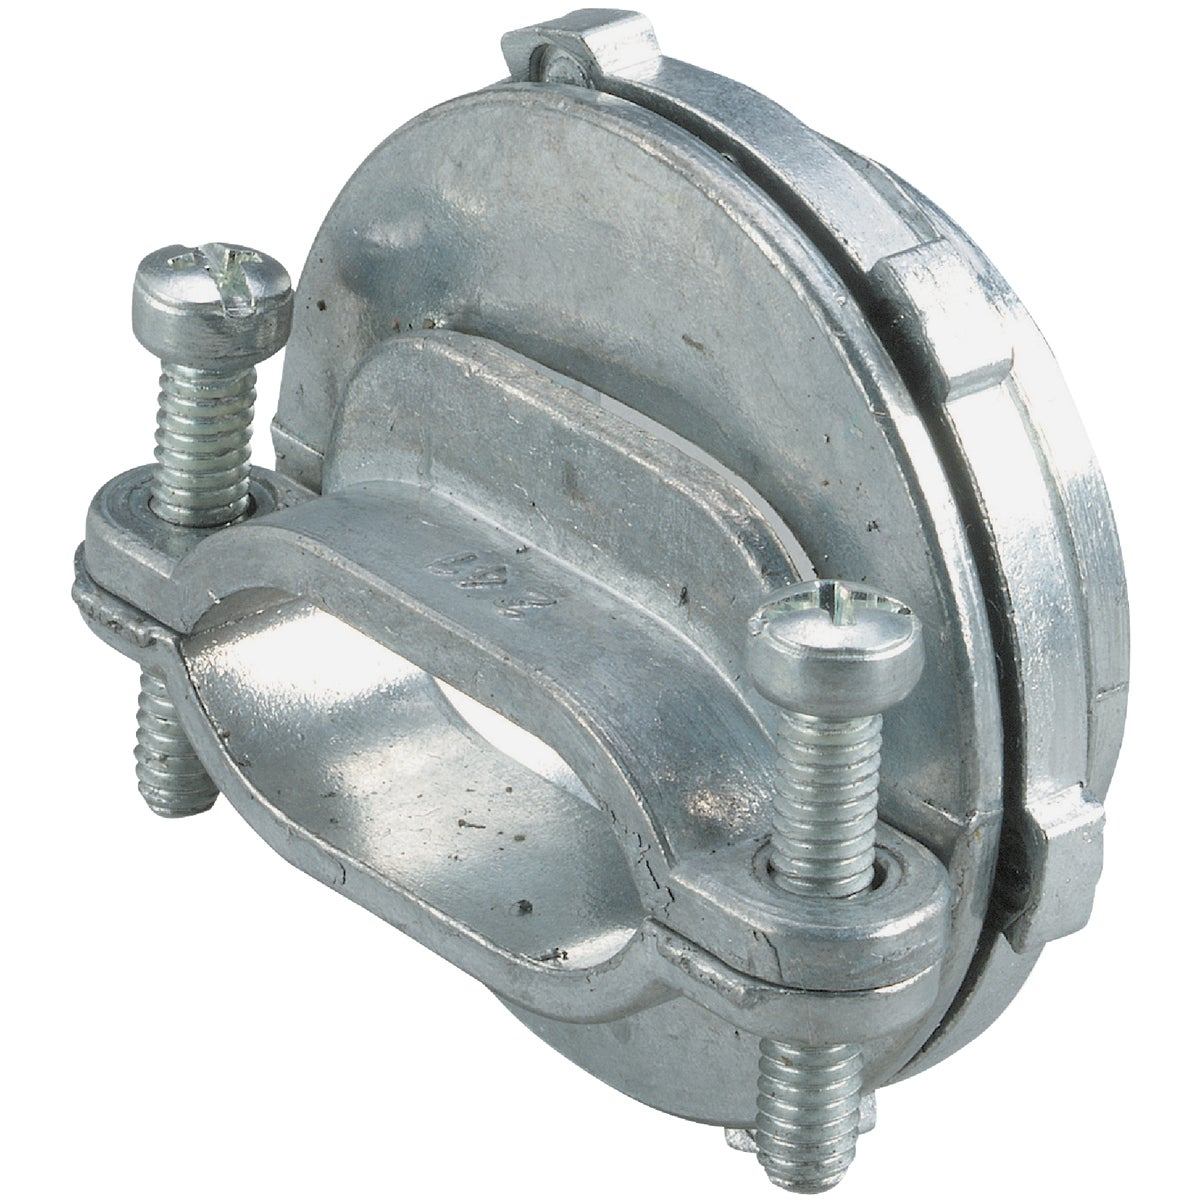 "1-1/4"" BOX CONNECTOR - NC0411 by Thomas & Betts"